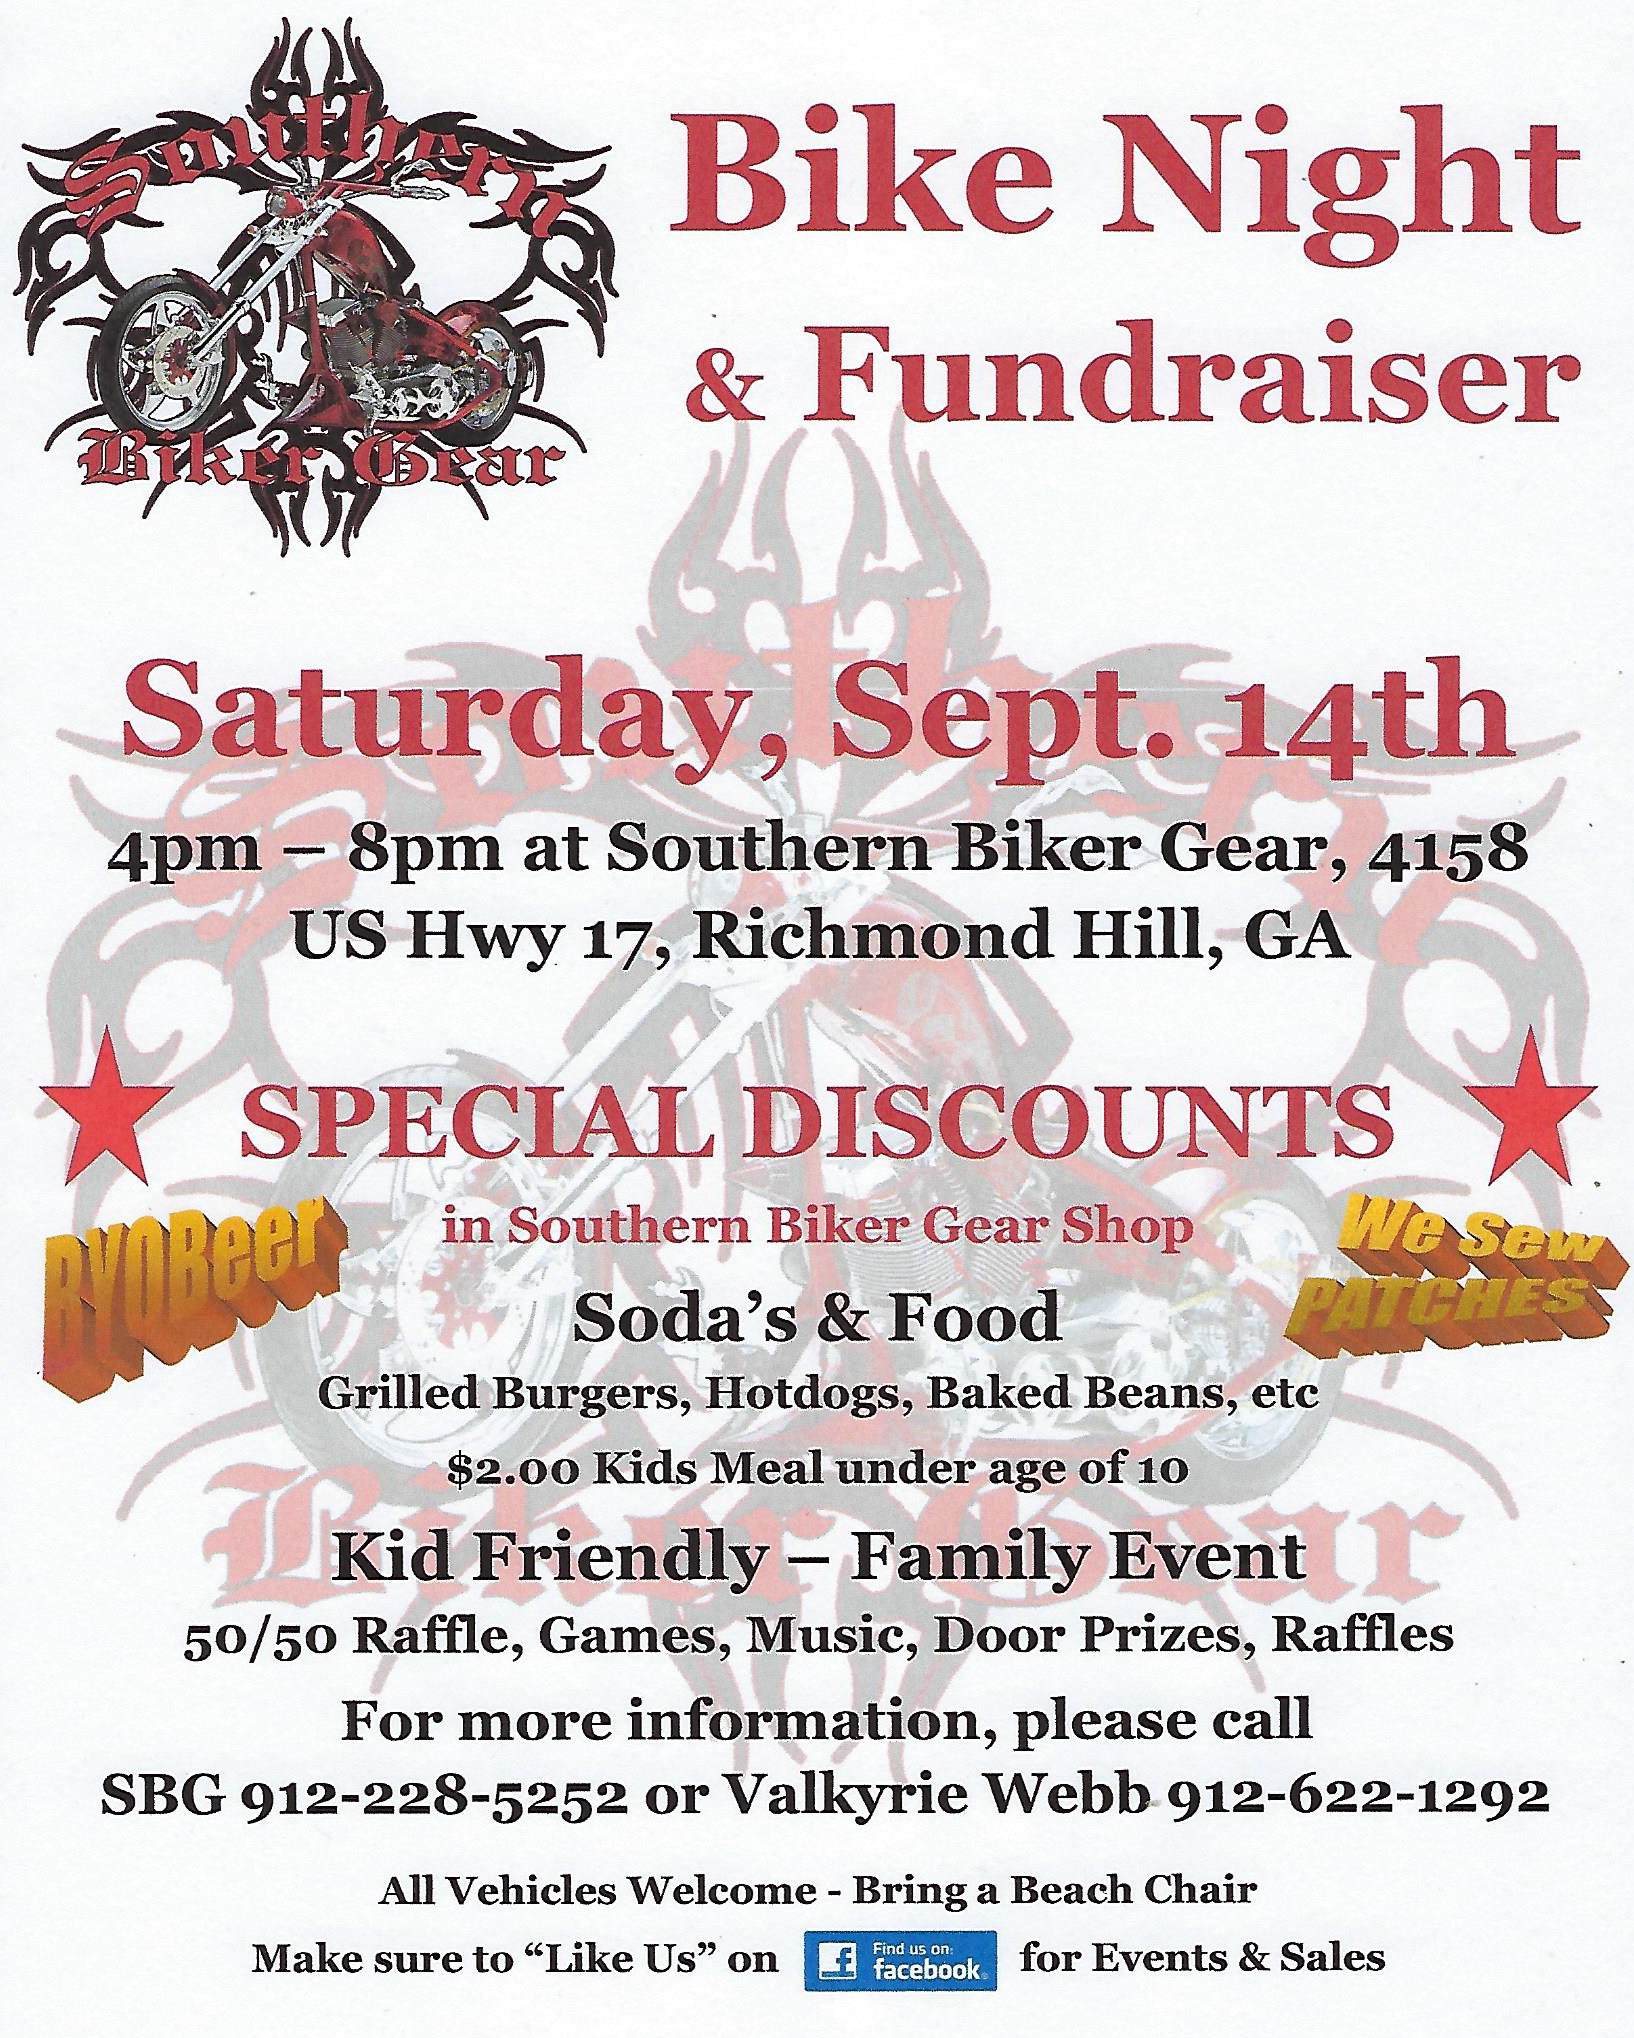 Southern Biker Gear Bike Night & Fundraiser @ Southern Biker Gear | Richmond Hill | Georgia | United States